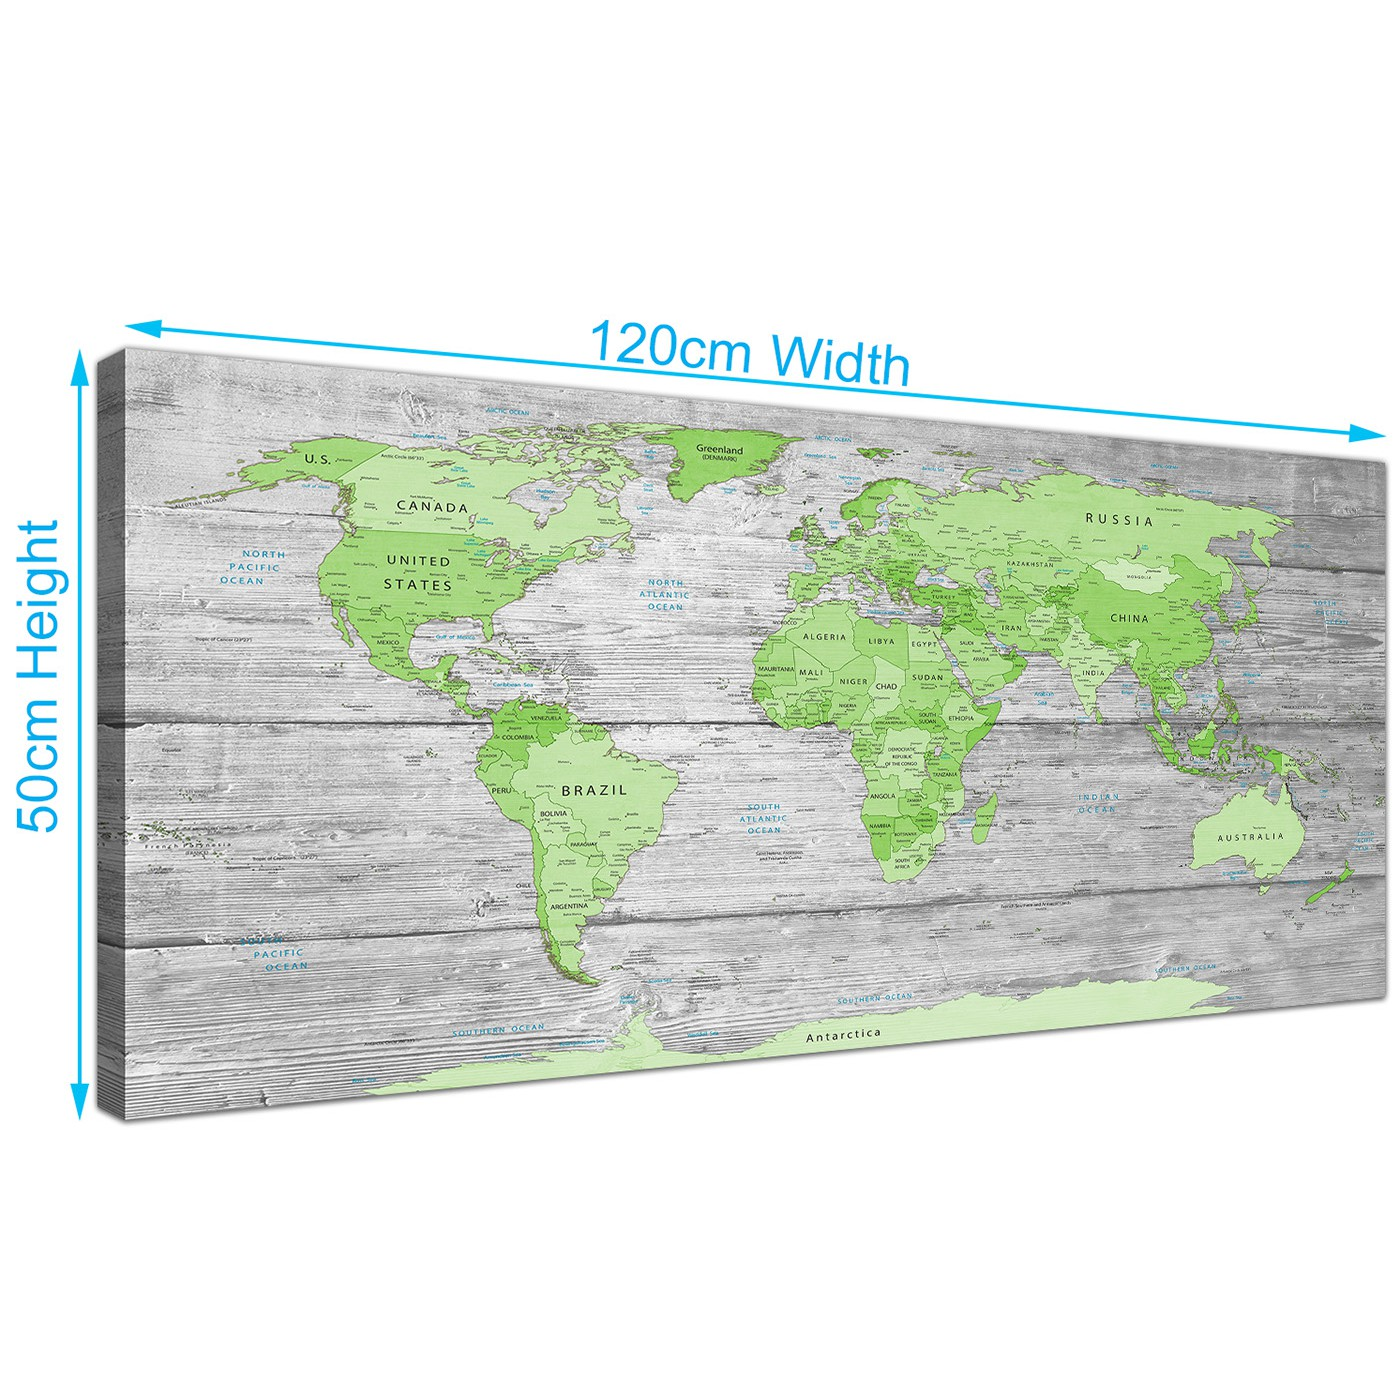 Large lime green grey world map atlas canvas wall art print 120cm display gallery item 2 panoramic green grey large lime green grey world map atlas canvas wall art print maps canvas display gallery item 3 gumiabroncs Images